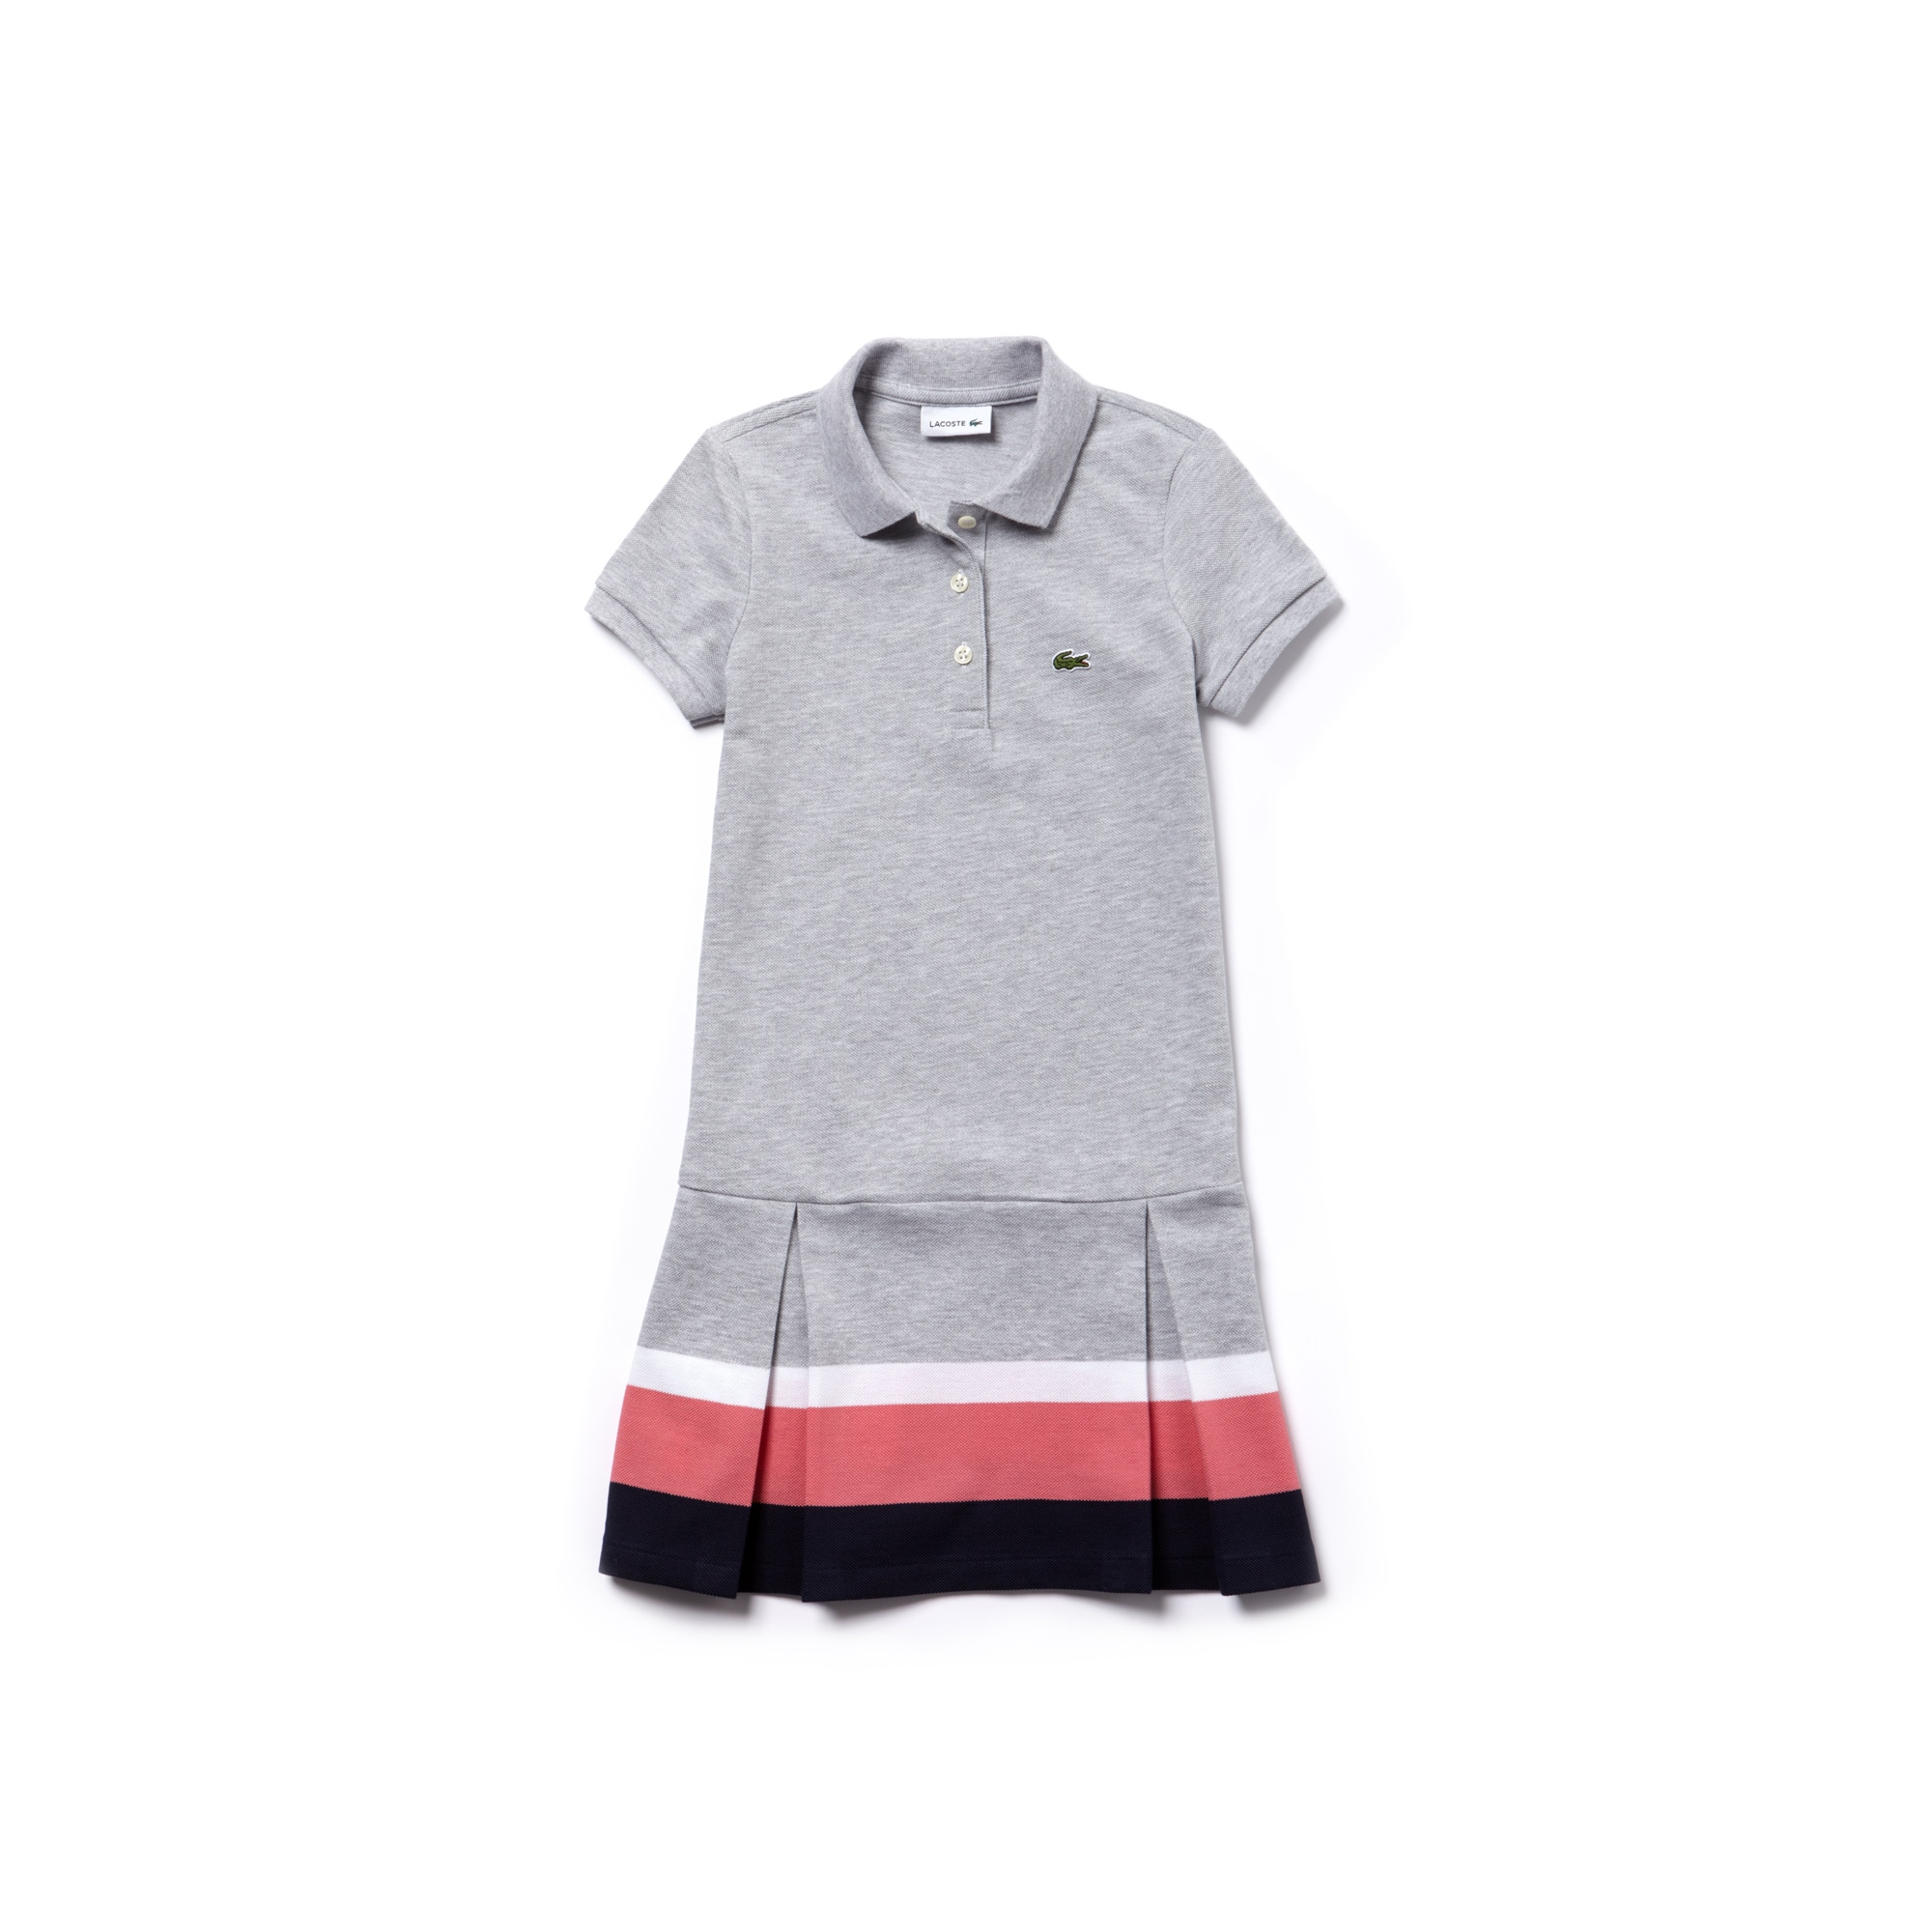 Girls' Contrast Band Pleated Petit Piqué Polo Dress